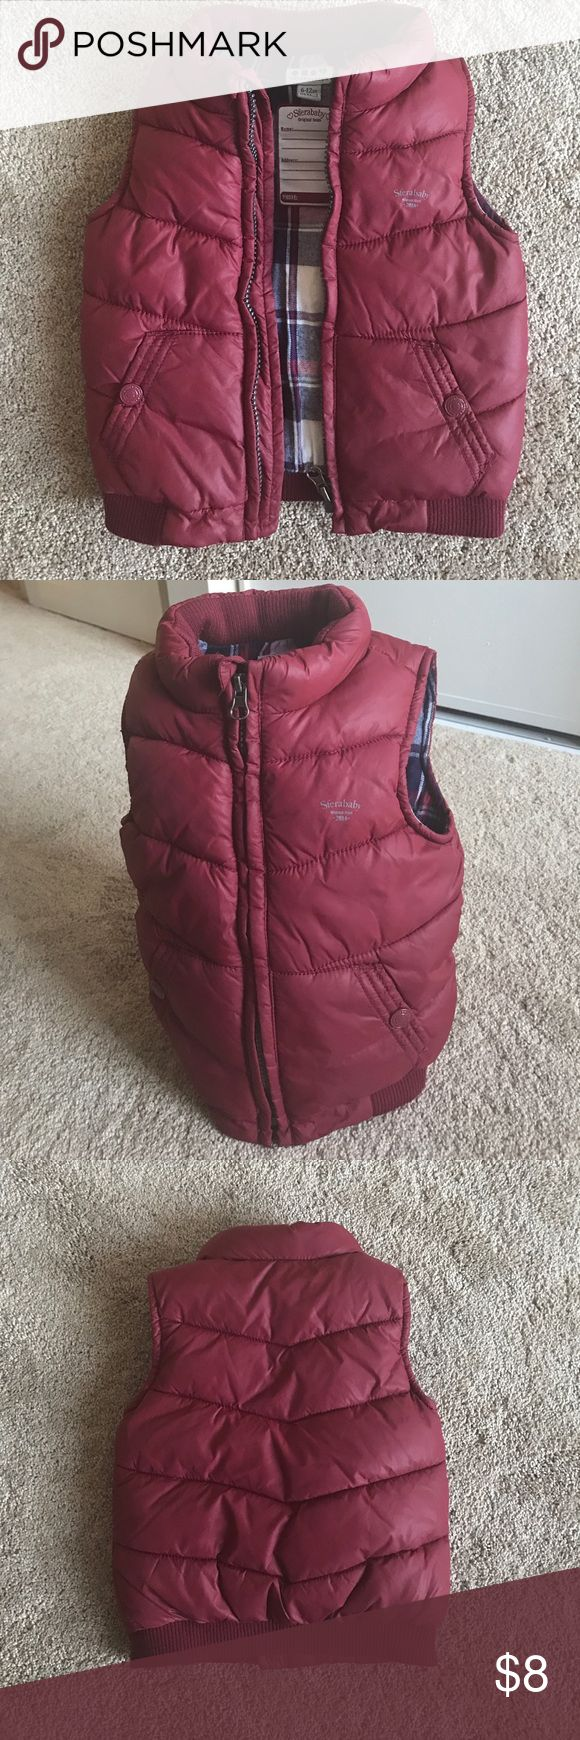 NWOT Cute vest NWOT it was a gift that my baby never used. The size is 6-12 months I think it will fit better someone close to 12 months. Super warm perfect for winter sfera Jackets & Coats Vests